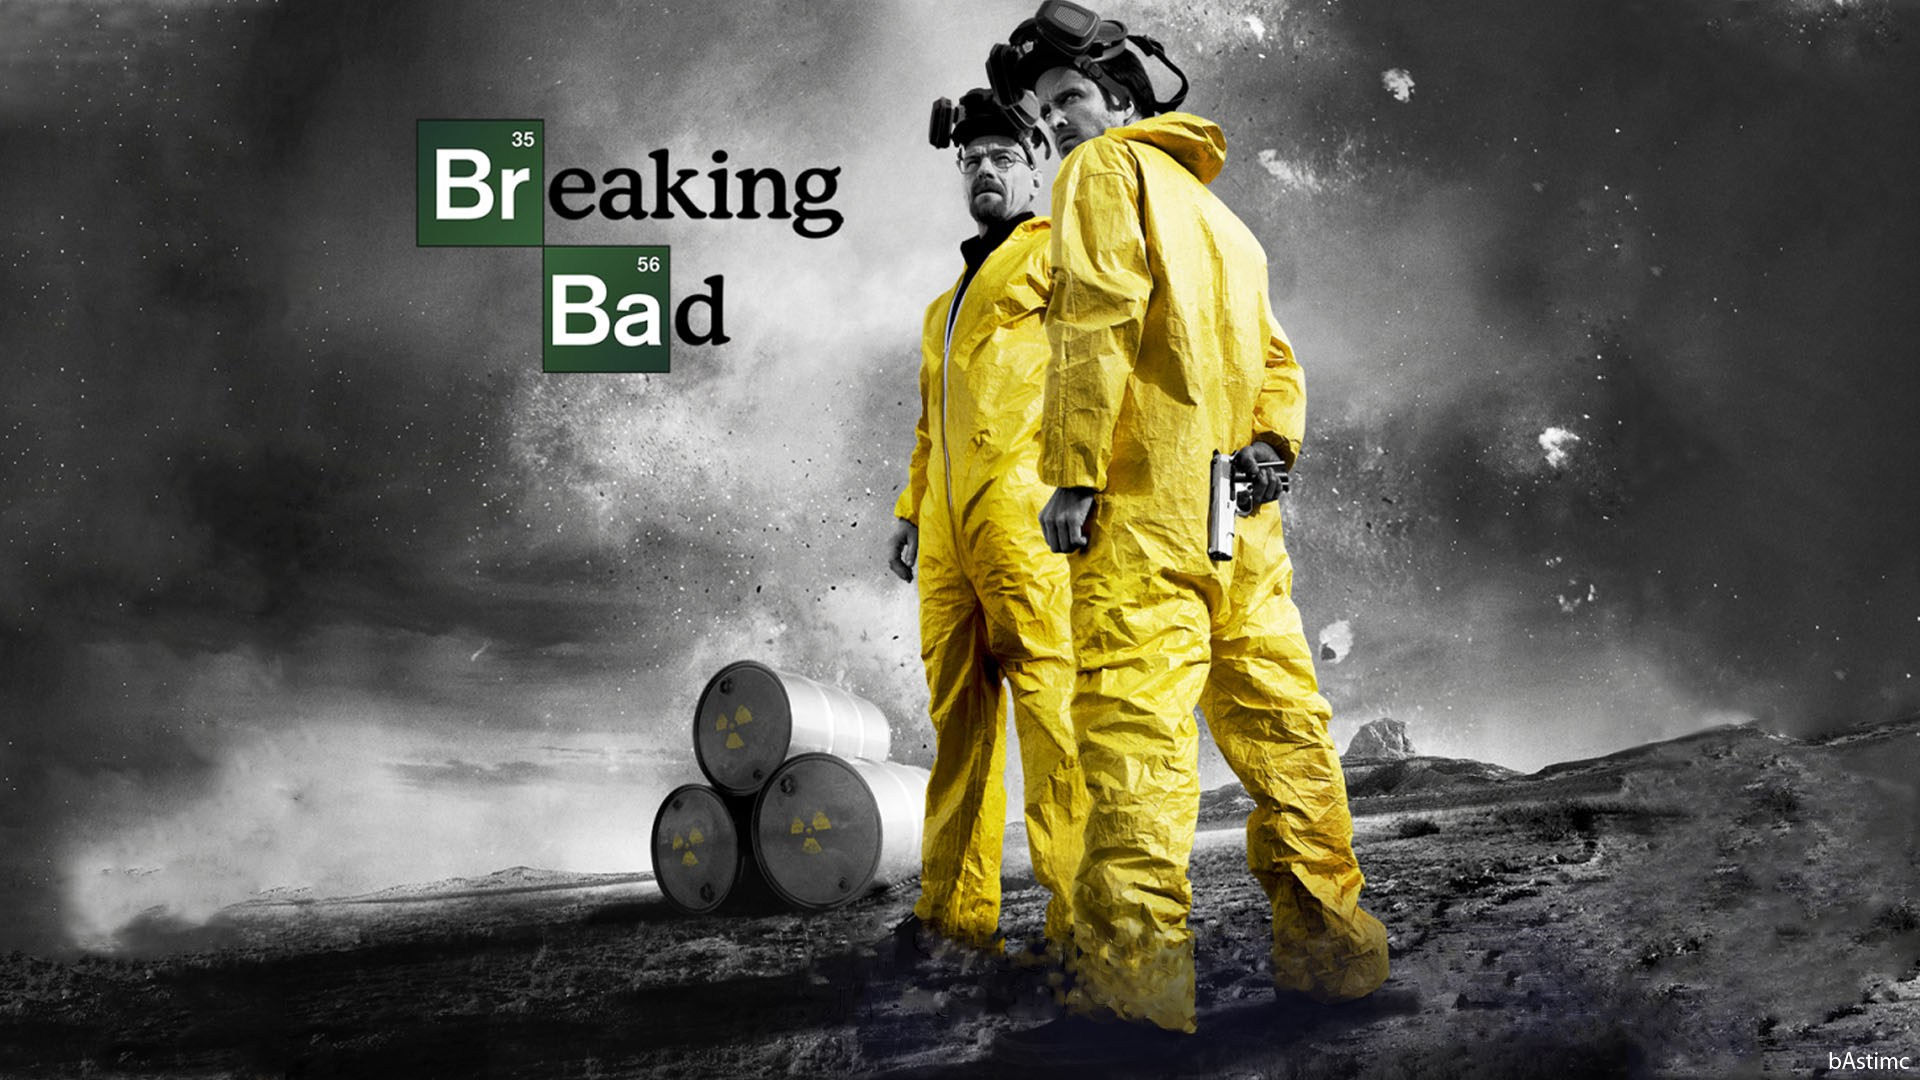 Breaking-Bad-by-bAstimc-1920×1080-wallpaper-wpc9003188